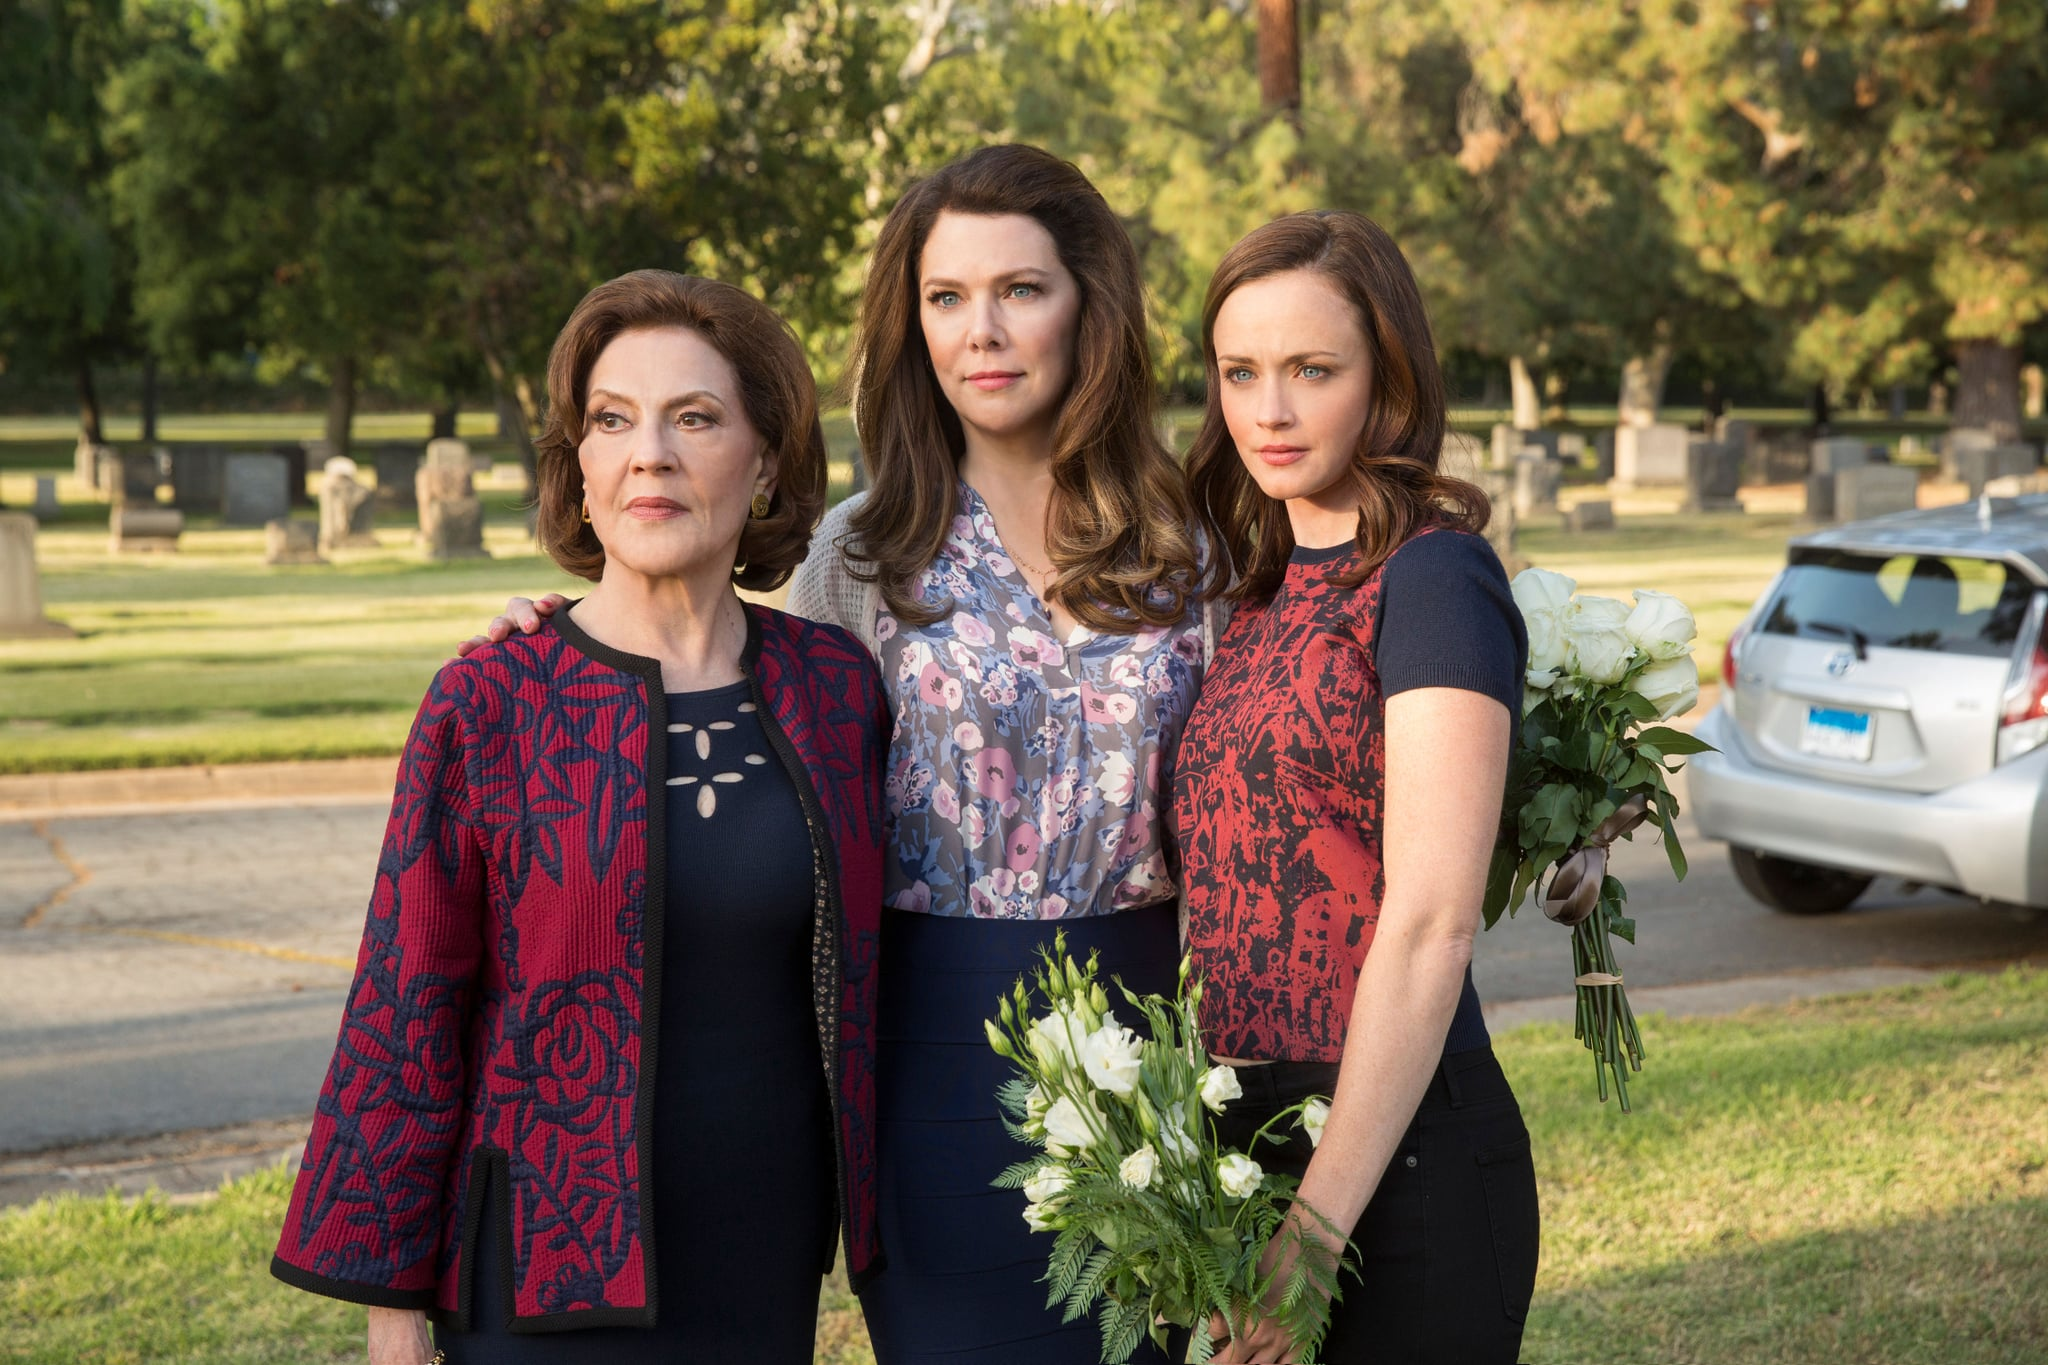 GILMORE GIRLS: A YEAR IN THE LIFE, Kelly Bishop, Lauren Graham, Alexis Bledel in 'Summer', (Season 1, Episode 103, aired November 25, 2016), ph: Robert Voets / Netflix / courtesy Everett Collection